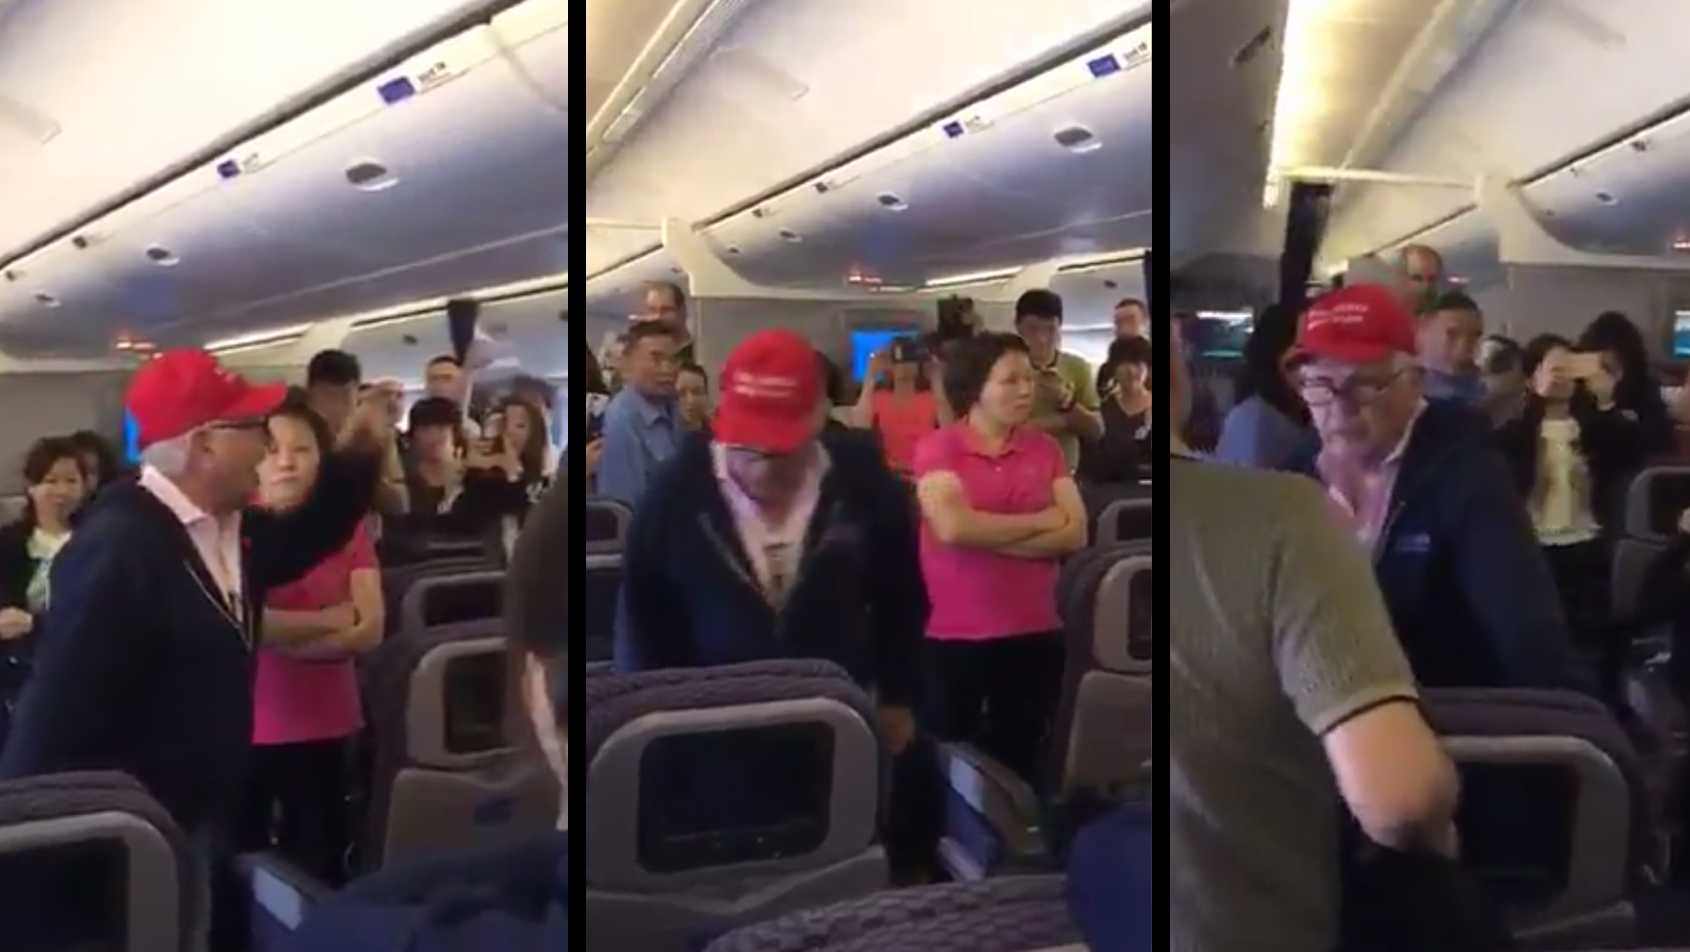 A man wearing a Make America Great Again hat caused a disruption on a United Airlines flight from Shanghai to Newark, forcing the plane to land at San Francisco International Airport. The incident was posted on social media by several passengers, including Daniel O'Connell. These still images were taken from a video posted by O'Connell.